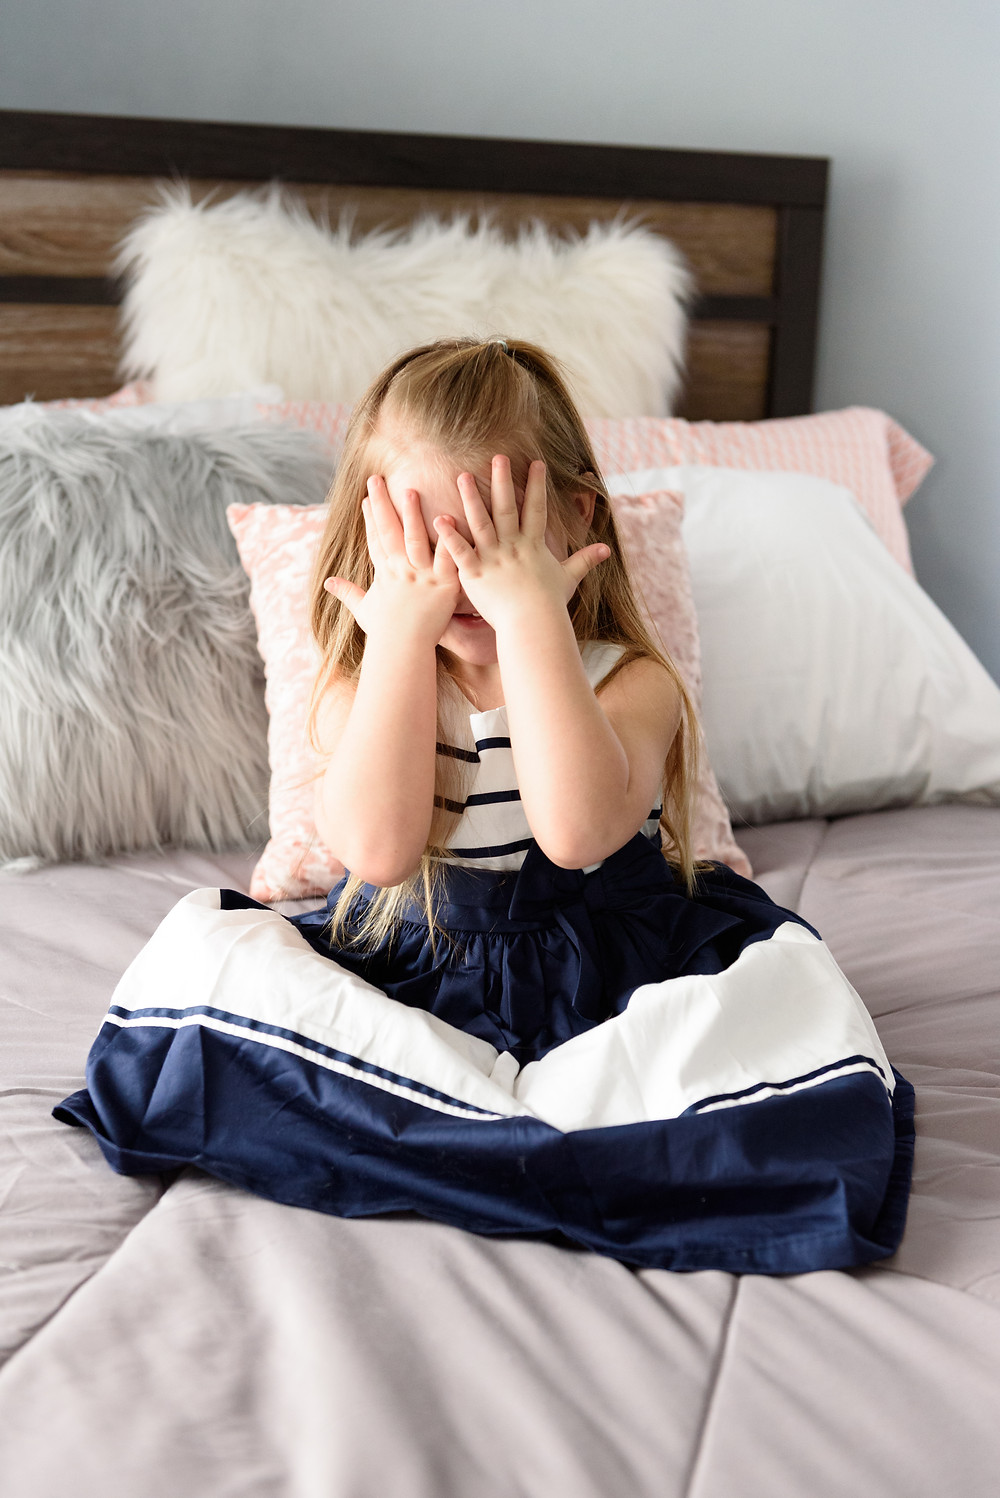 Young girl covering her eyes with her hands while waiting for a surprise.